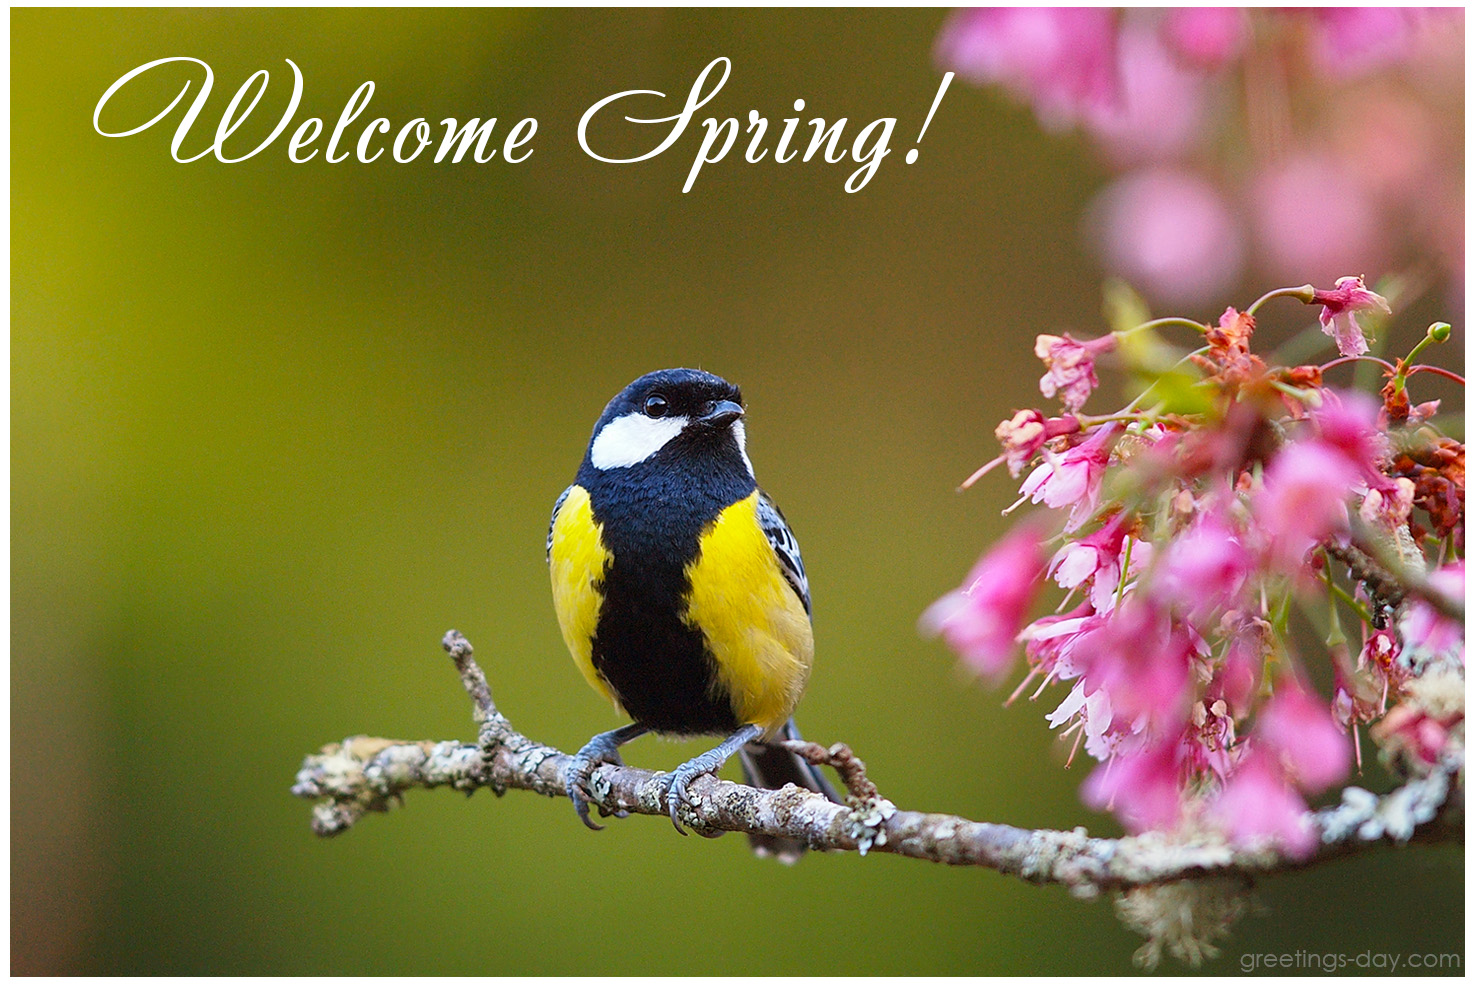 ImageSpace - Welcome Spring Quotes | gmispace com